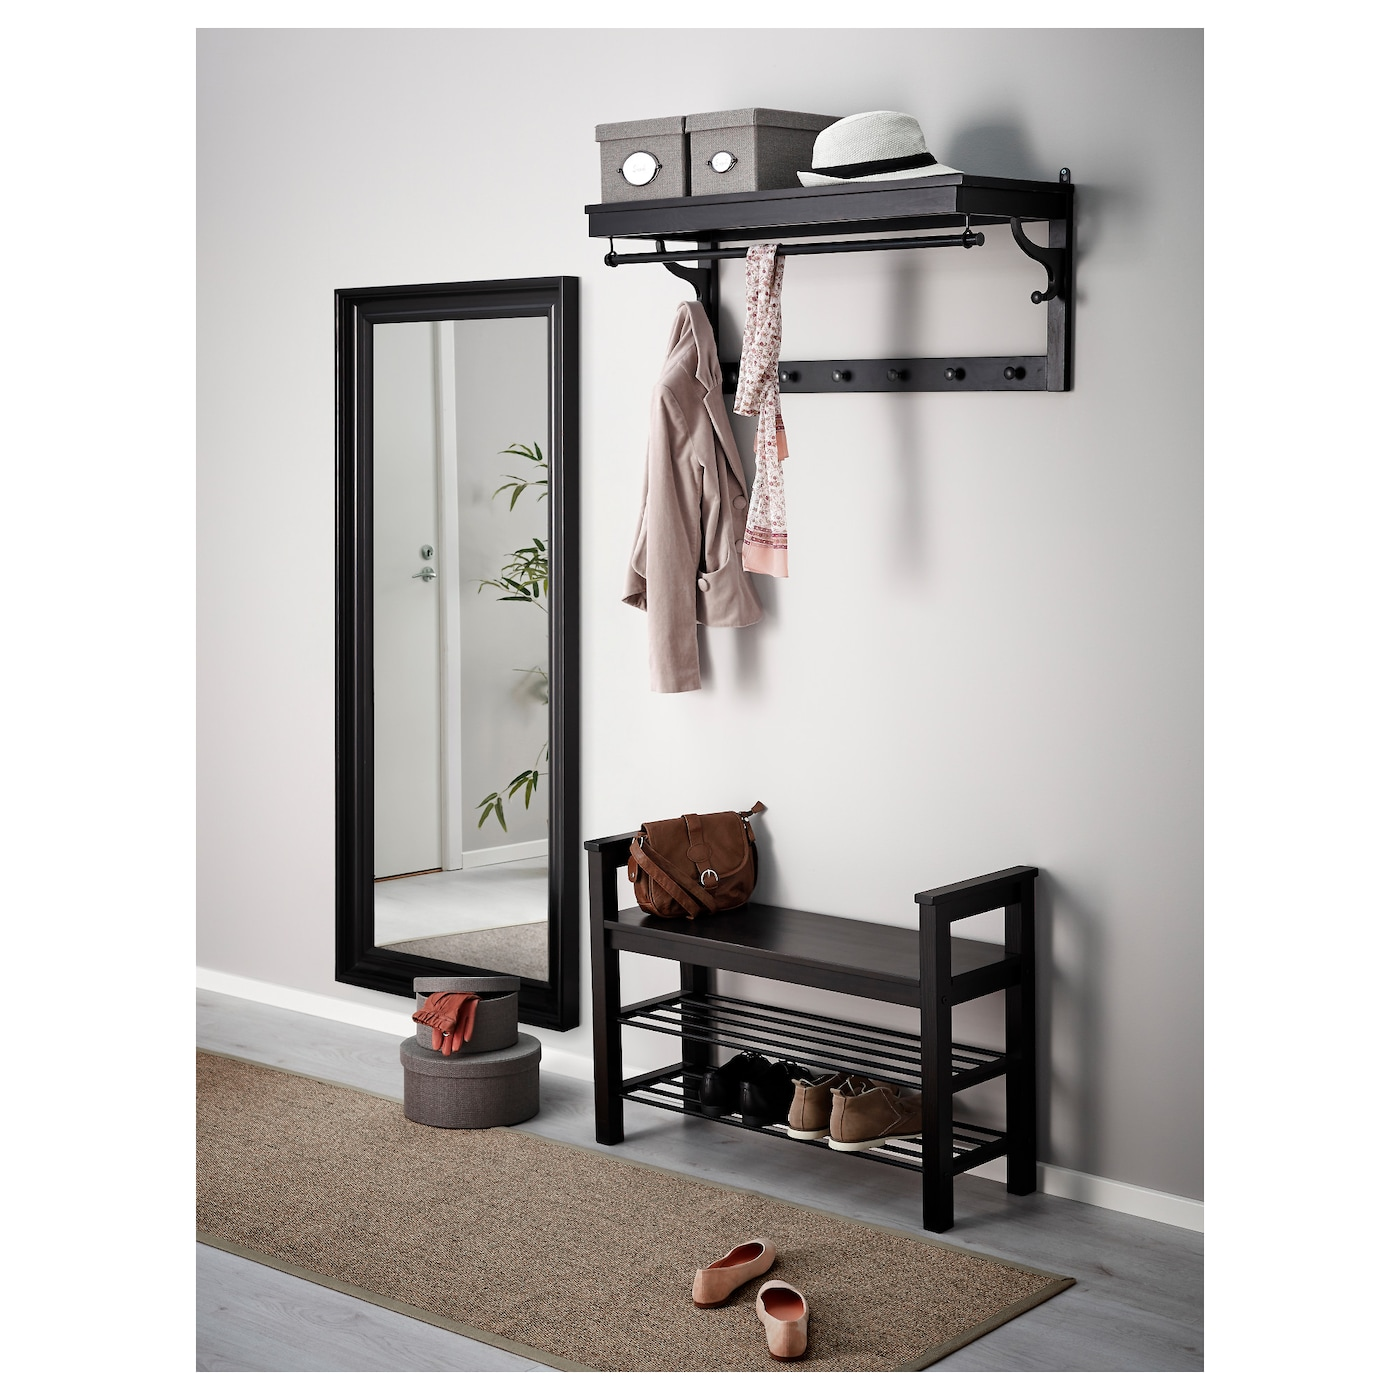 hemnes banc avec rangement chaussures brun noir 85x32 cm ikea. Black Bedroom Furniture Sets. Home Design Ideas